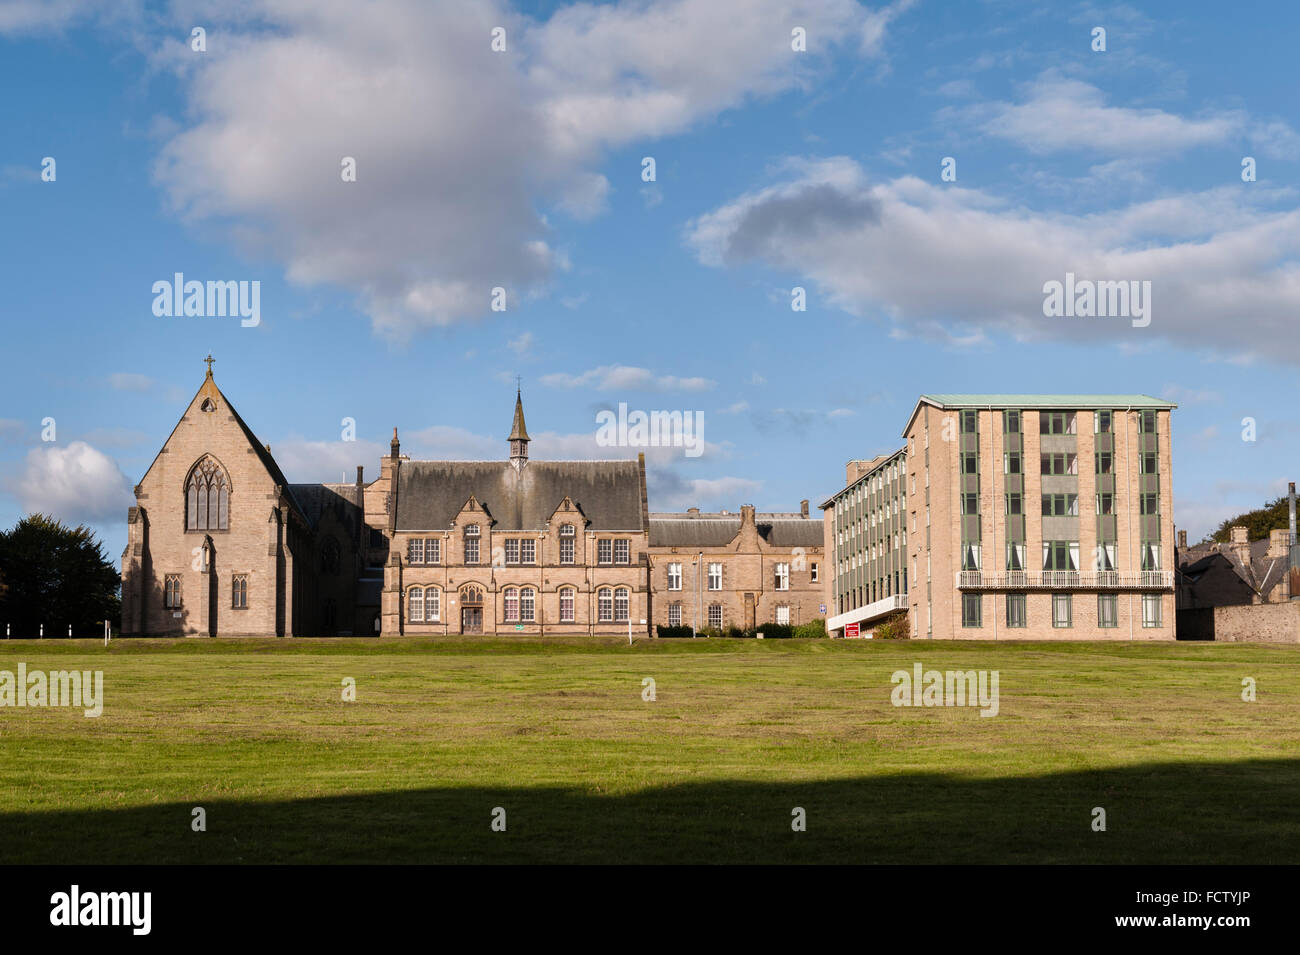 a now redundant Catholic seminary. The East Wing, Infirmary and Library - Stock Image